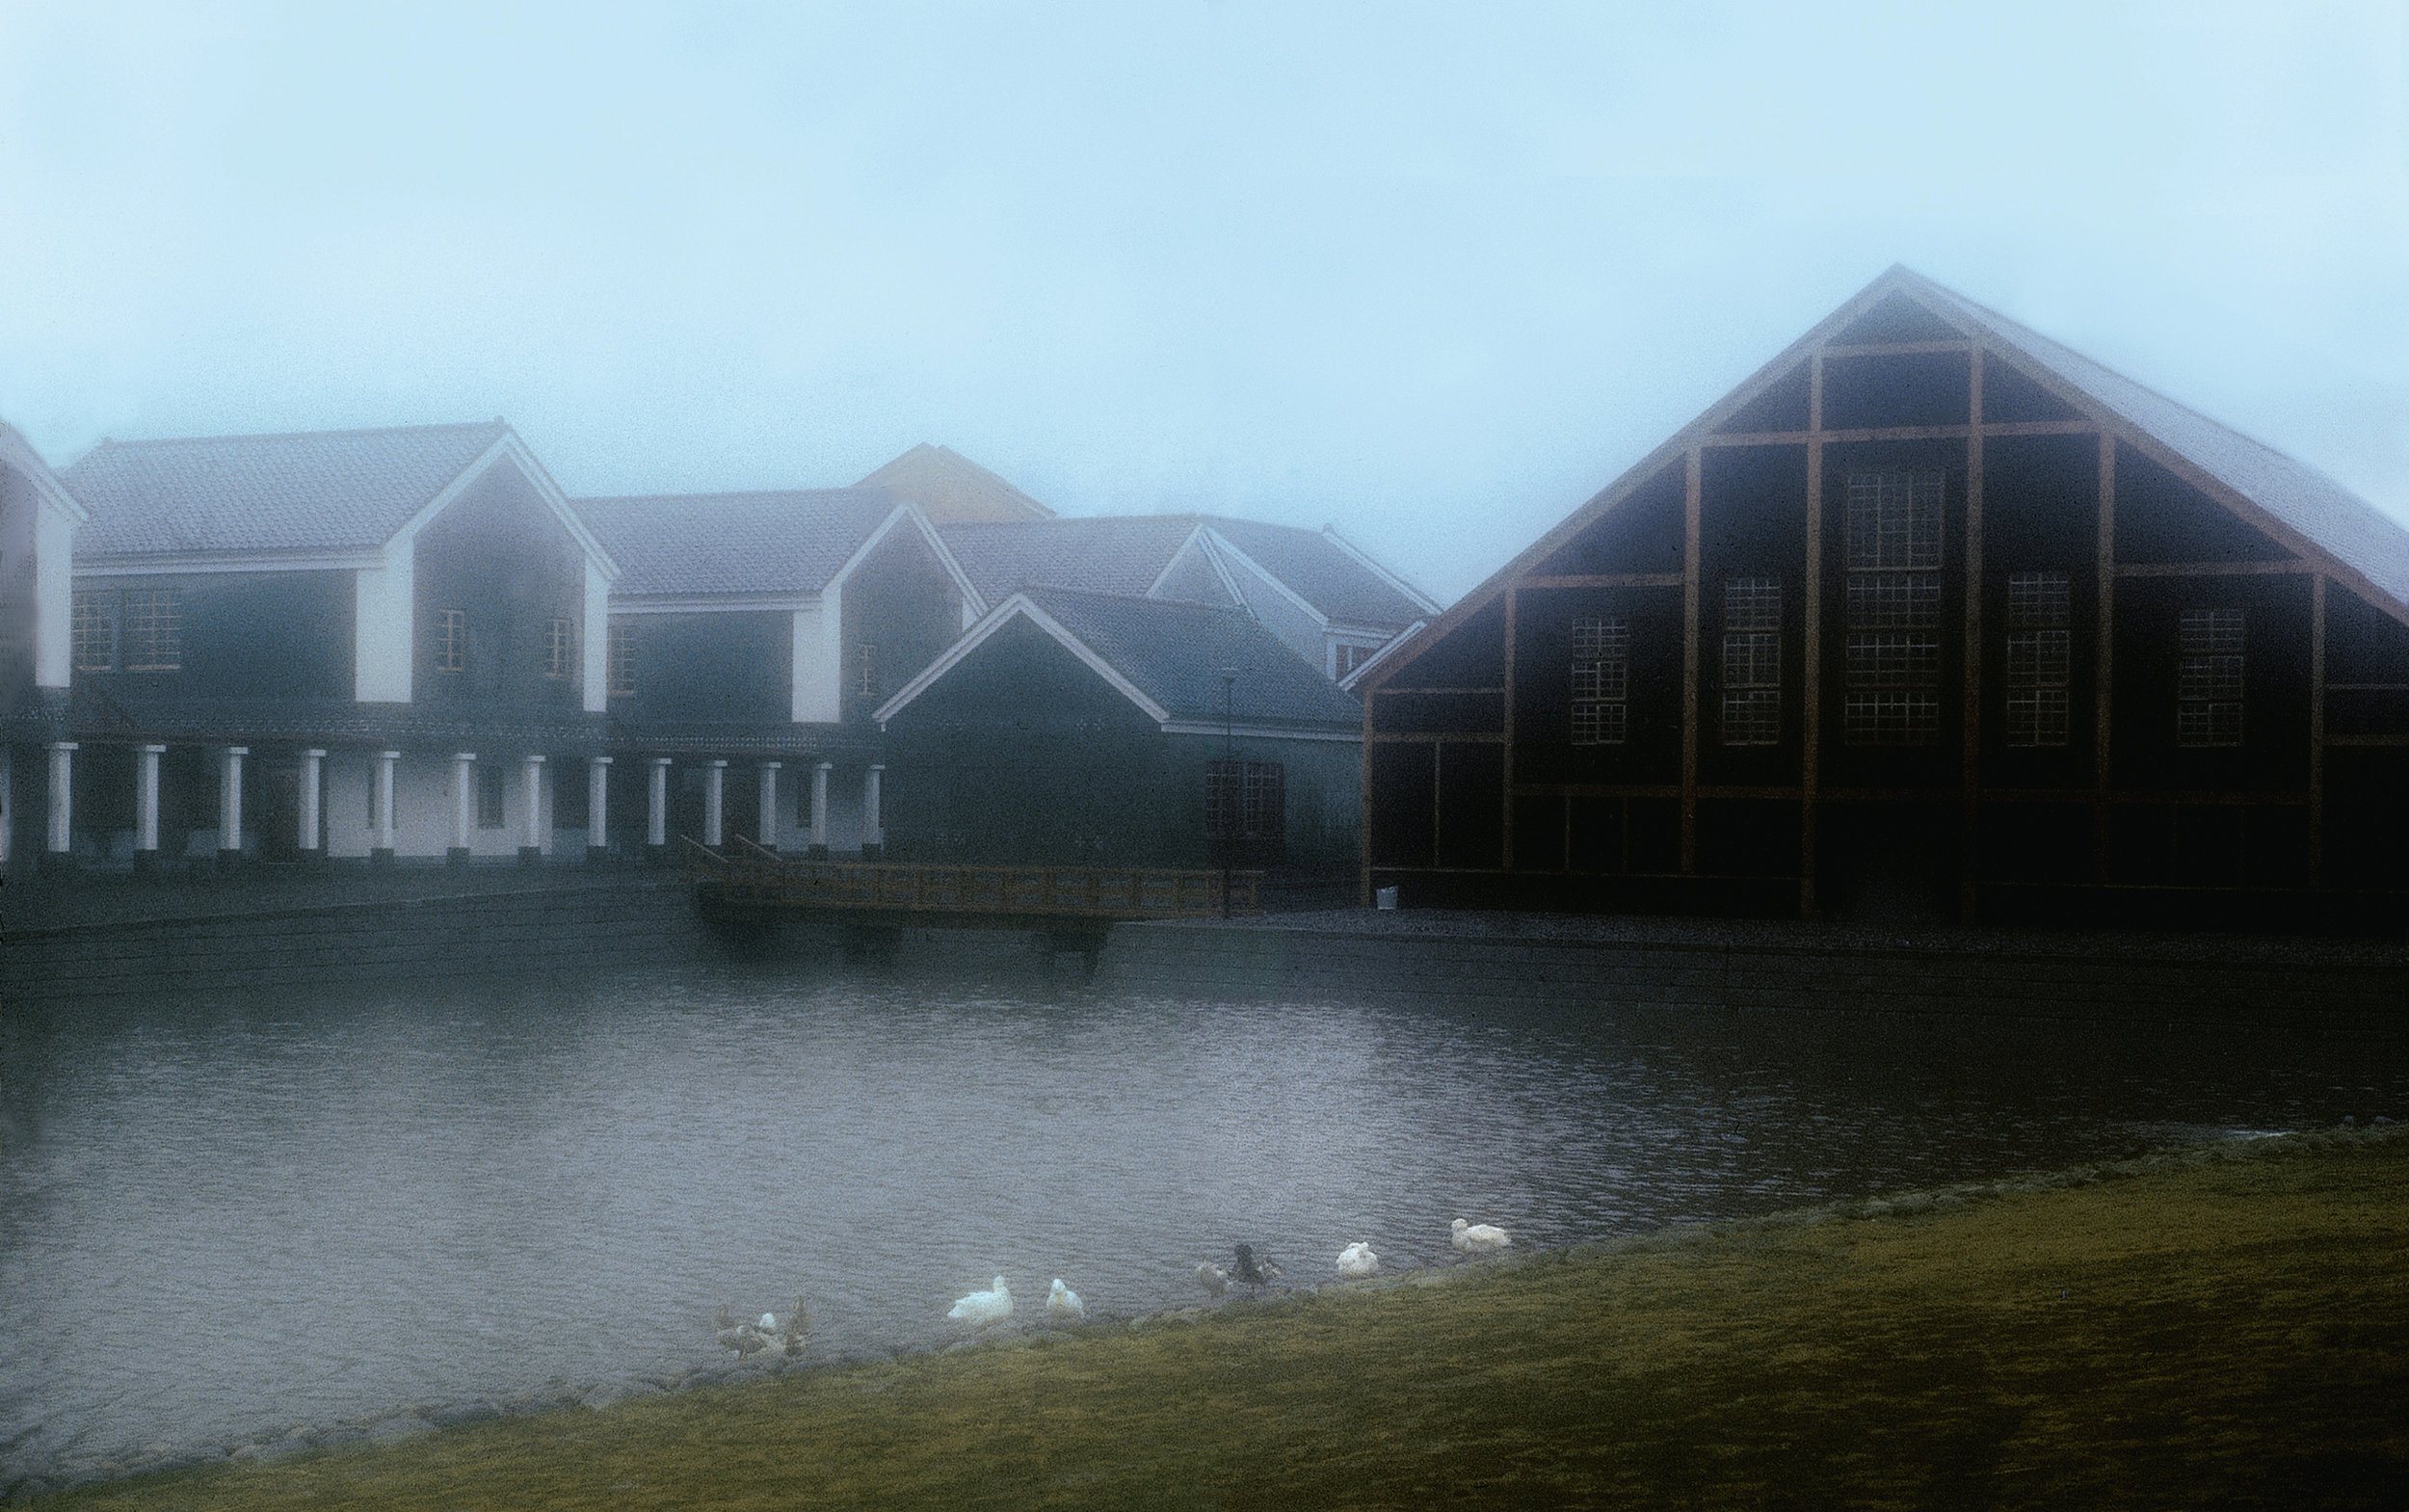 432-eishin_gym_lake_jeraldene-best_j_edit_cmyk_300_ppi-copy.jpg